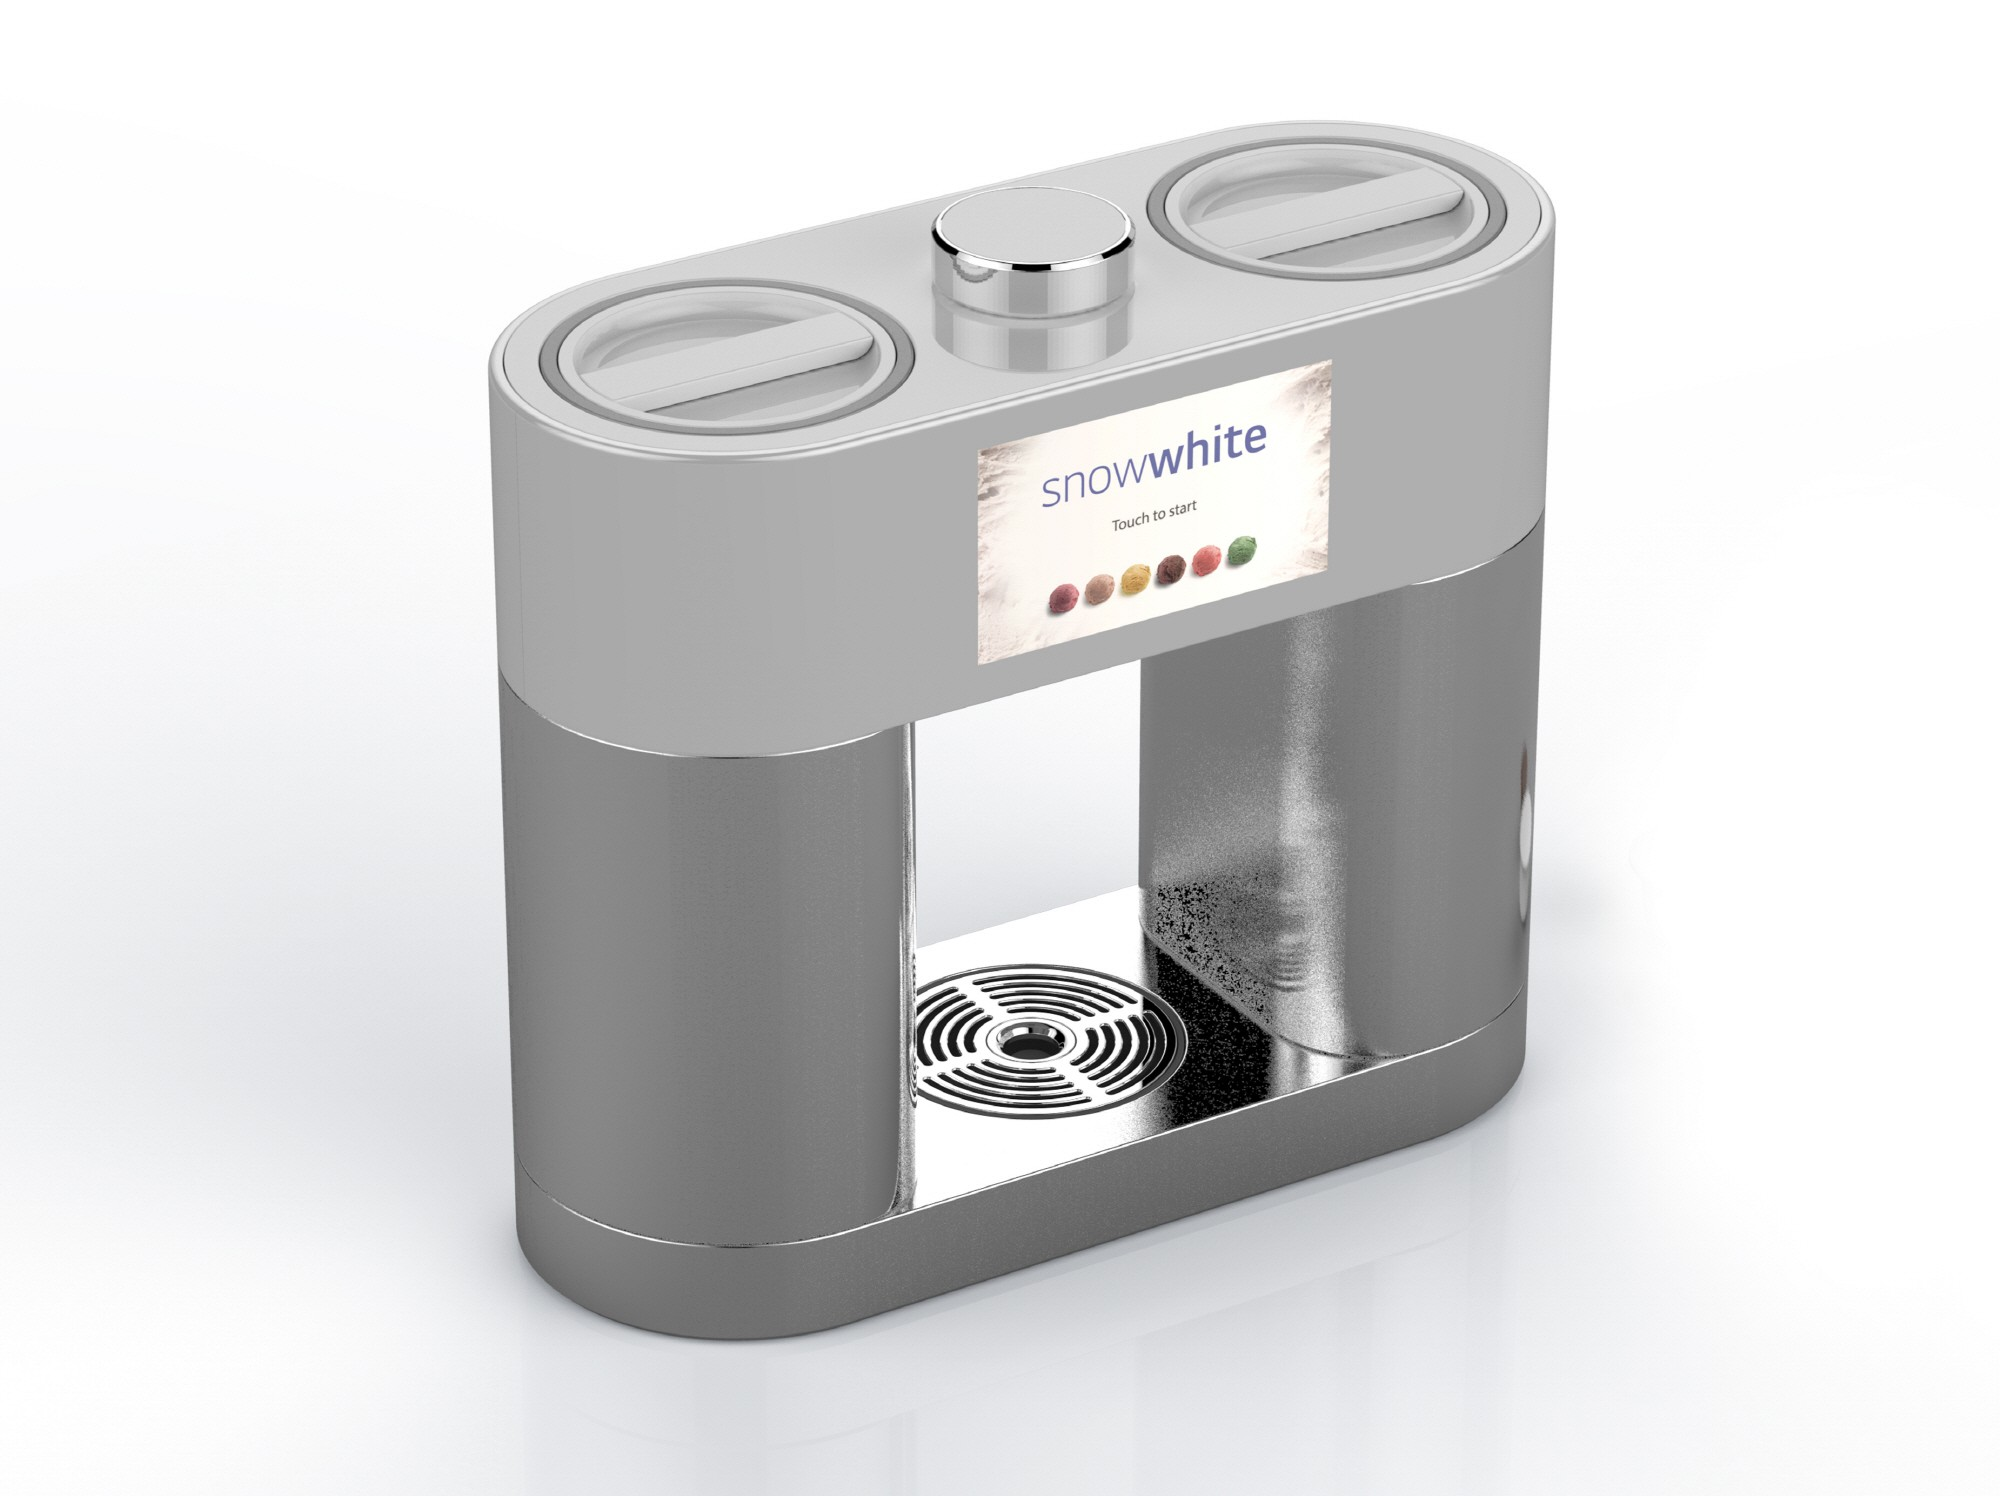 A 45-degrees clockwise view of LG's personal ice cream maker prototype, snowwhite